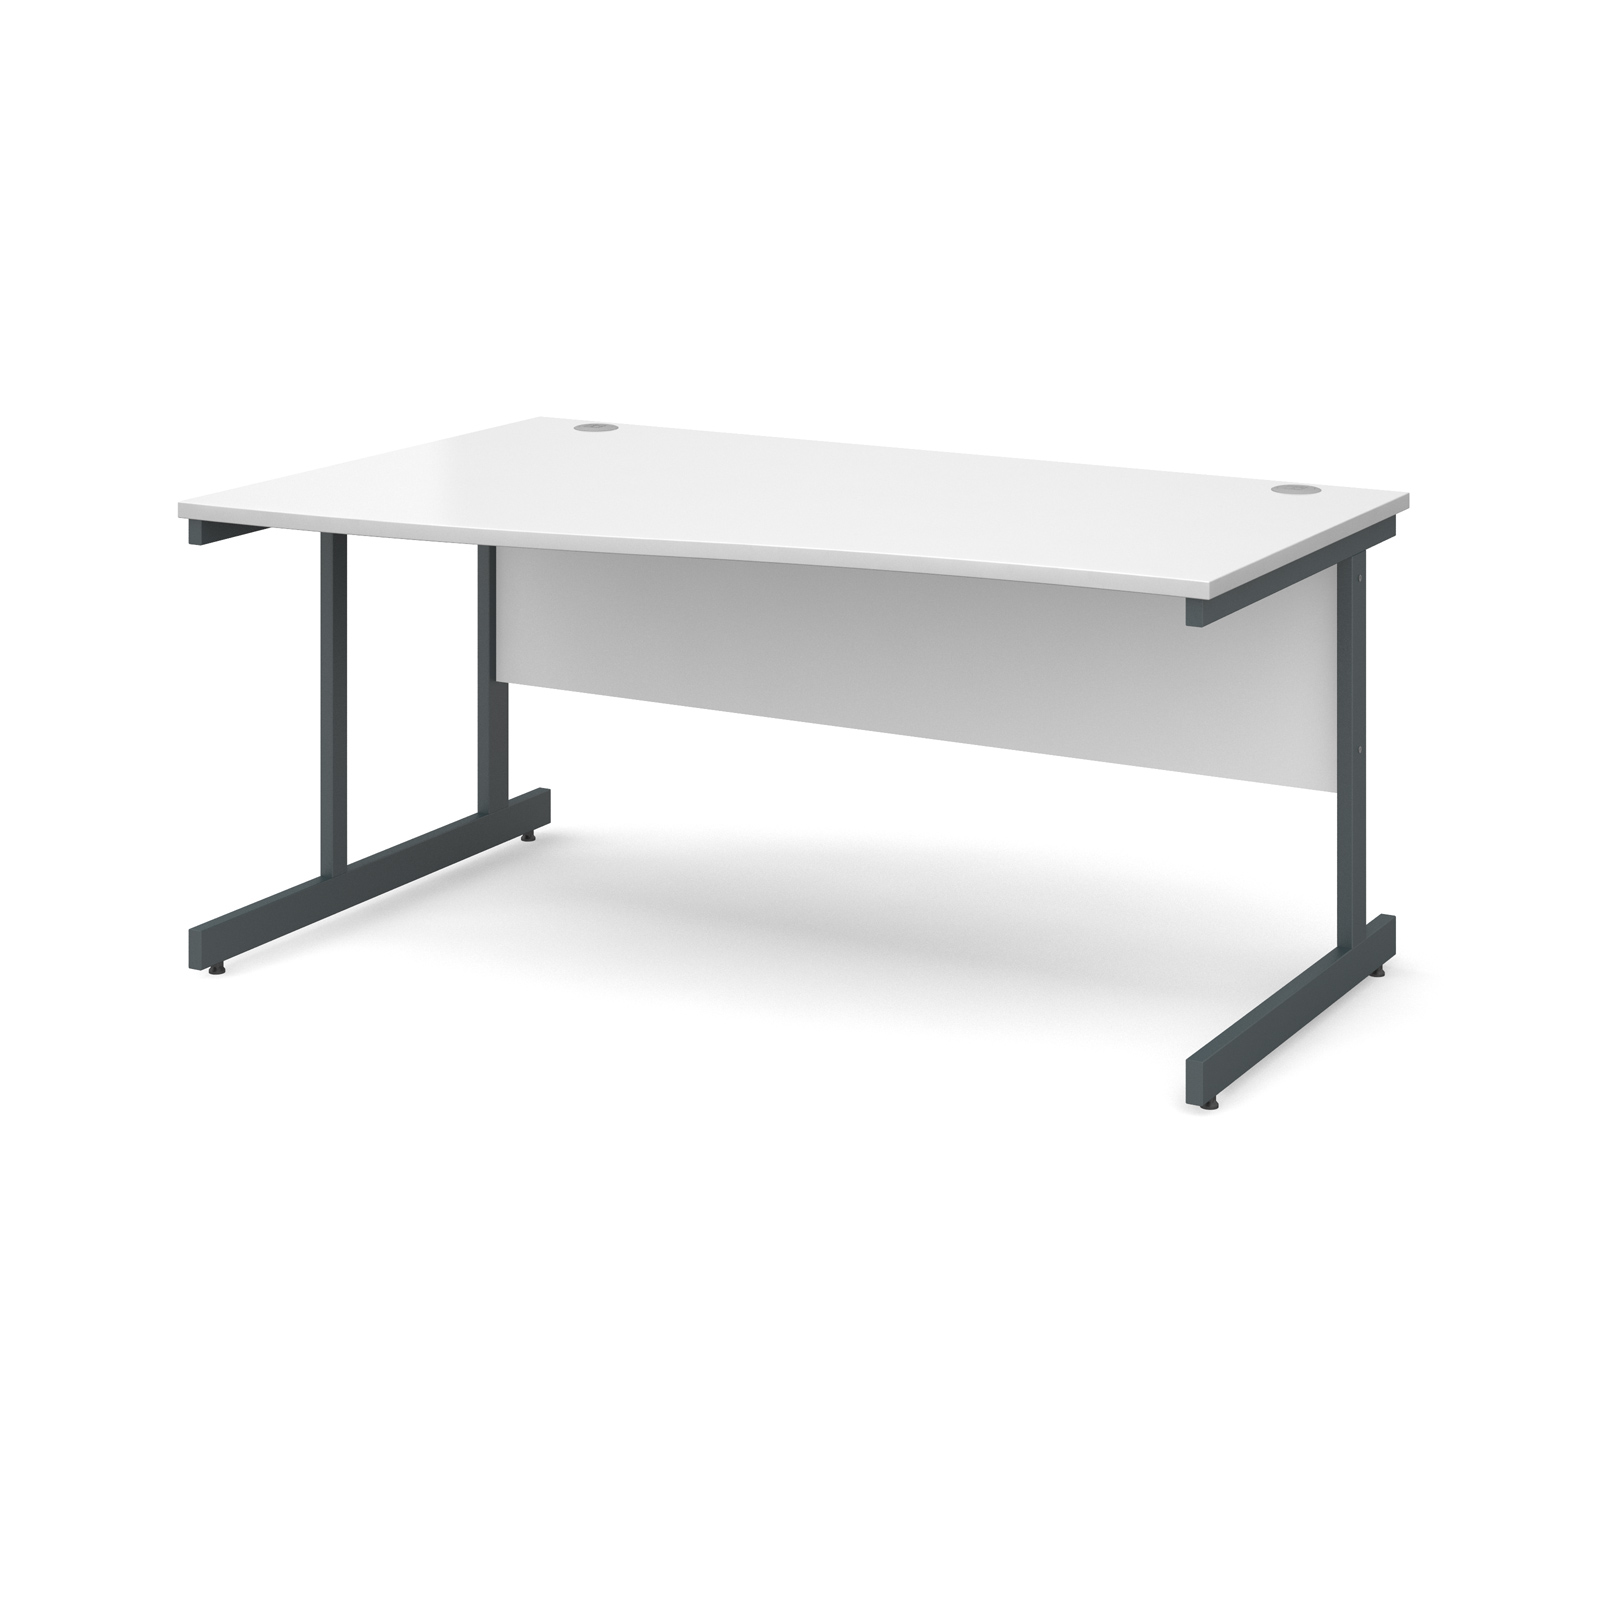 Contract 25 Left Hand Wave Desk 1600mm Graphite Cantilever Frame White Top